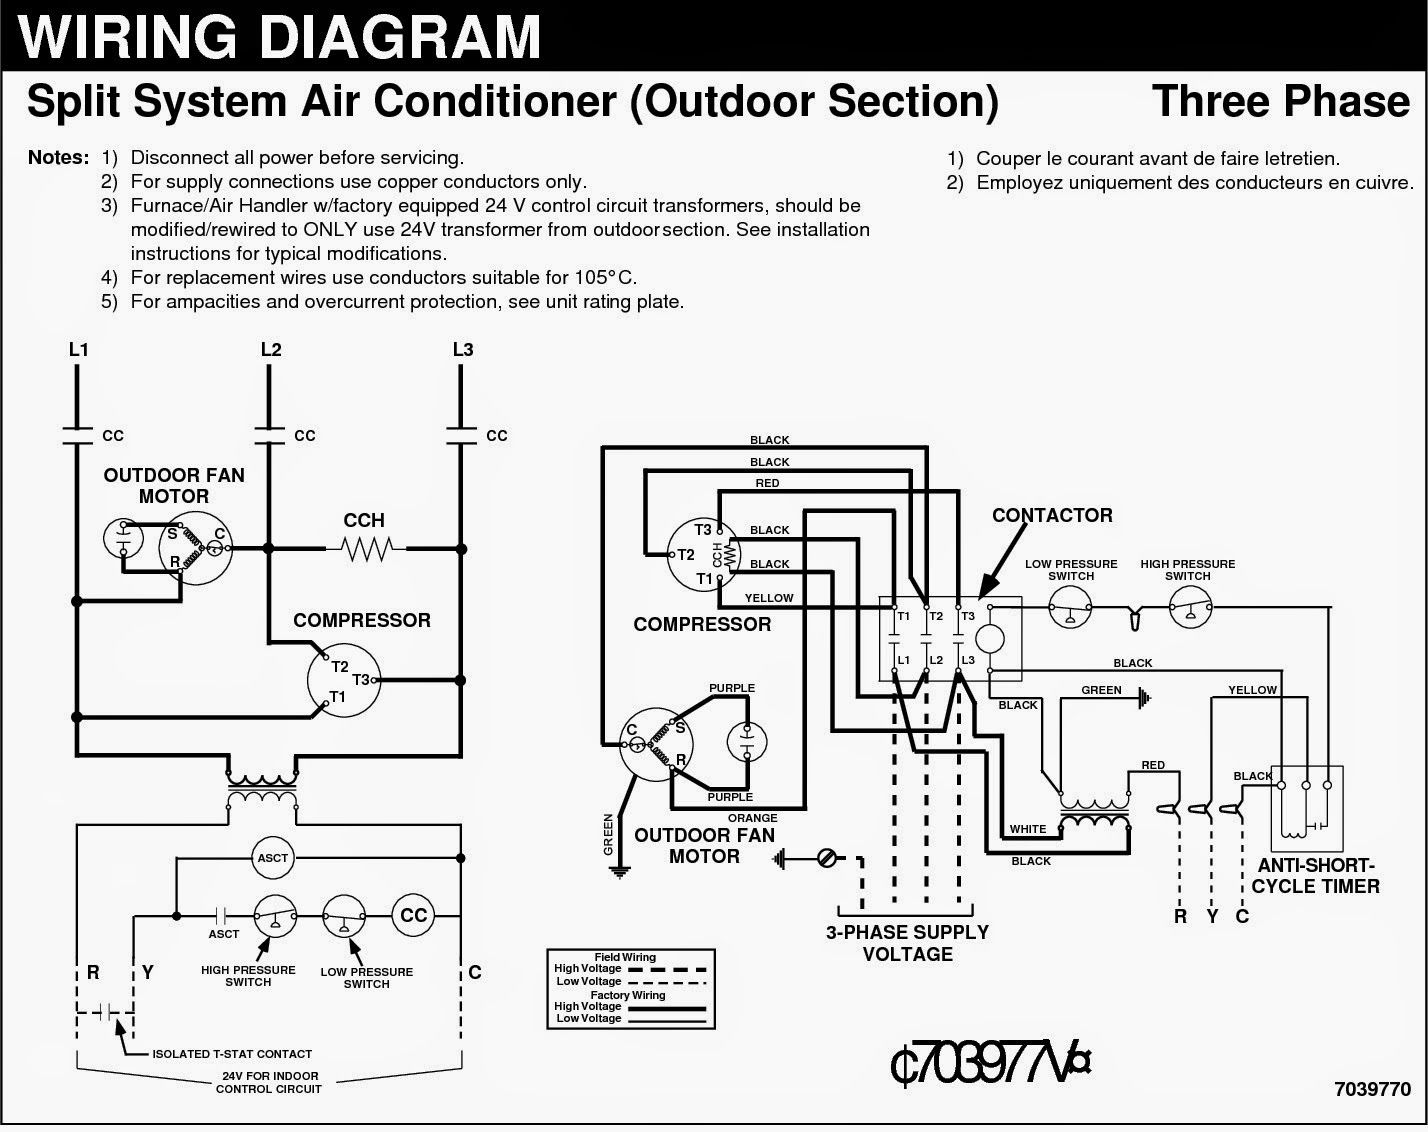 3 phase wiring diagram for house wiring diagram Nordyne Heat Pump Wiring Diagram